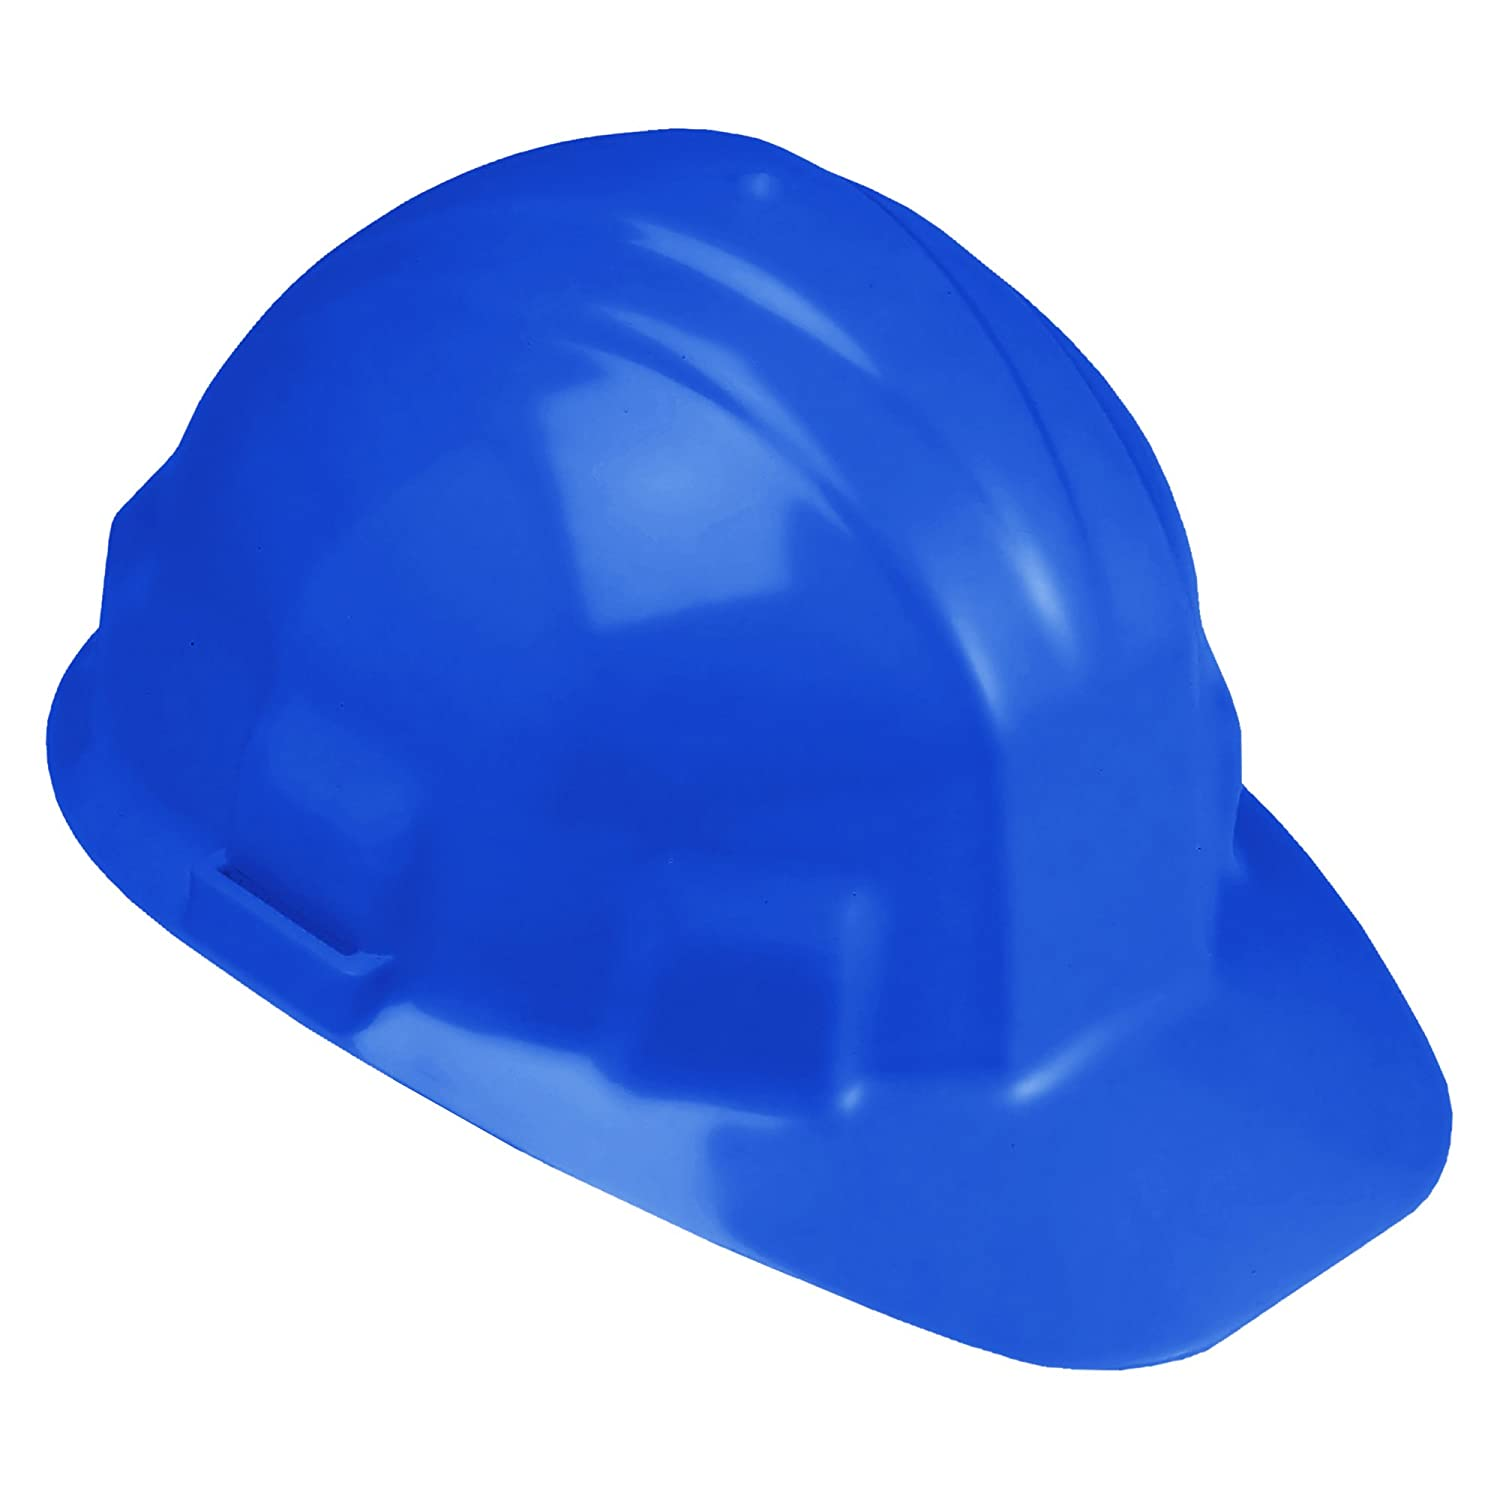 Jackson Safety 14416 Sentry III High Density Polyethylene Hard Hat with 6 Point Ratchet Suspension, Blue (Pack of 12) by Jackson Safety B008D7VT5M